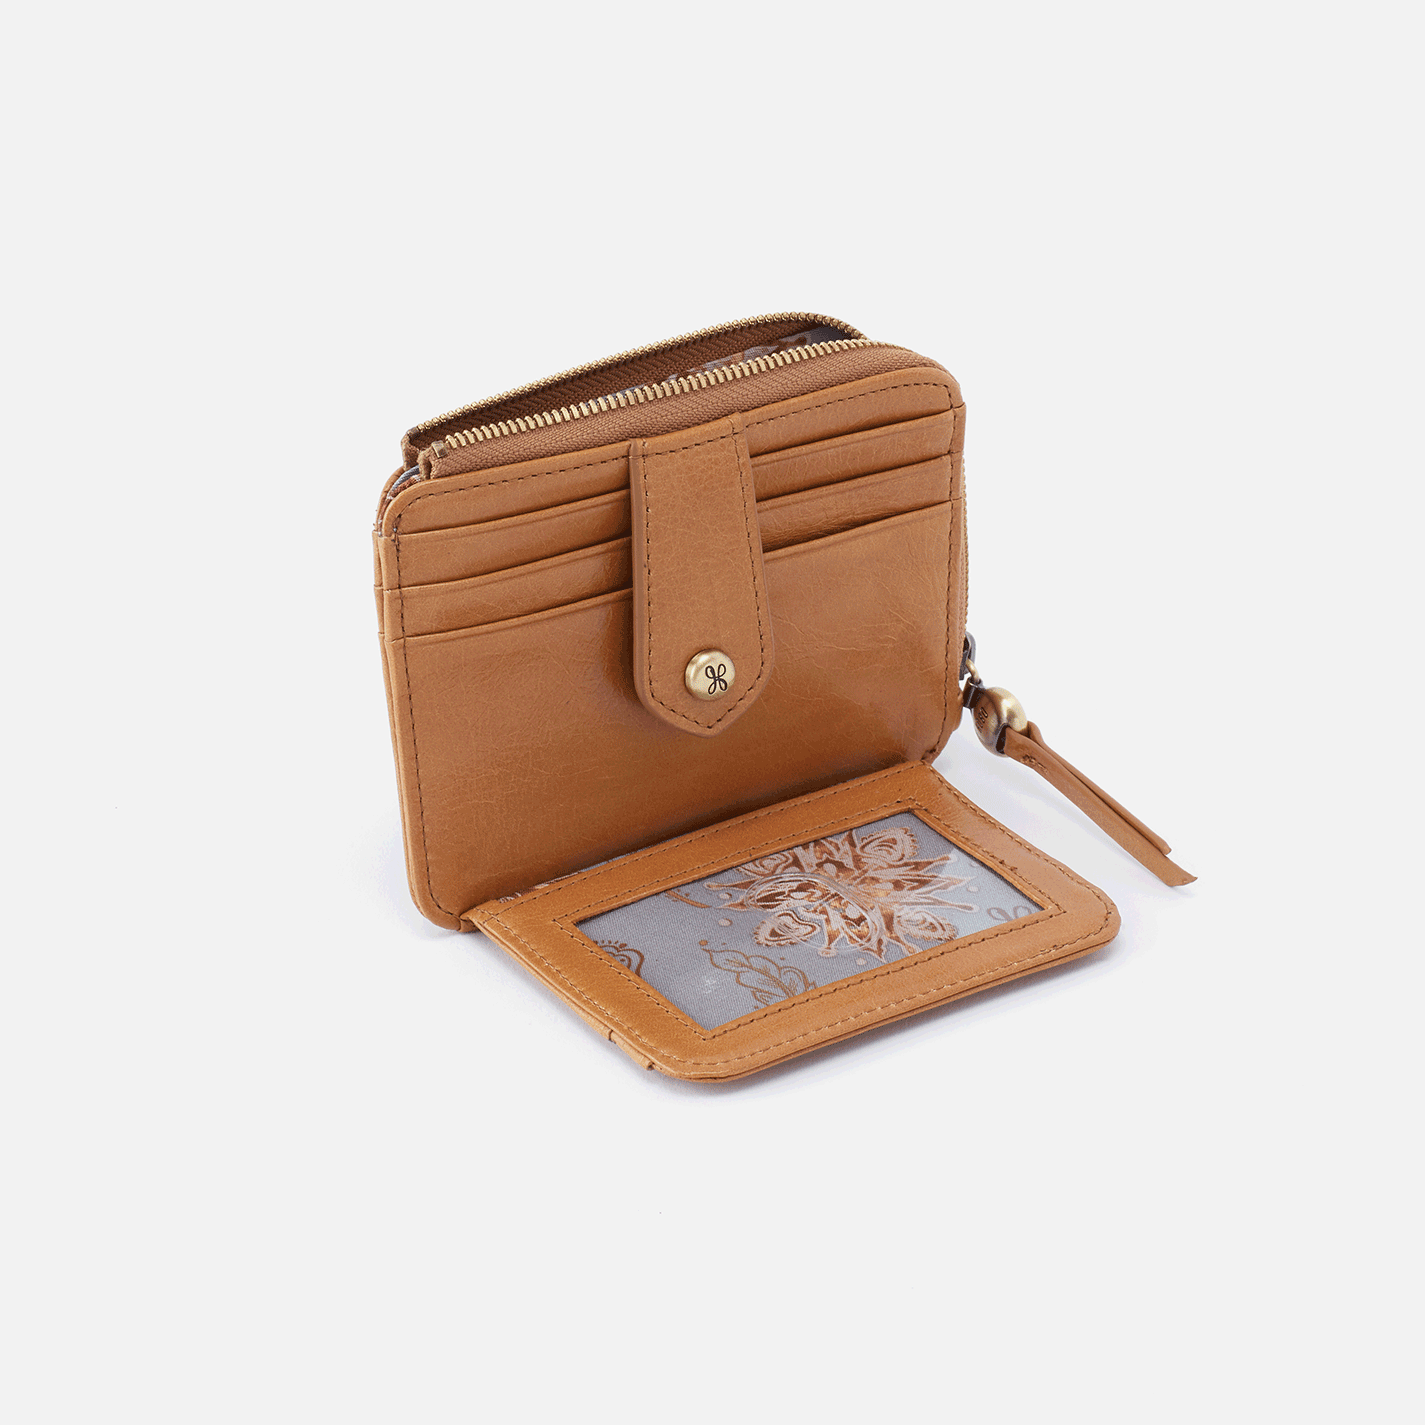 HOBO POCO Credit Card Wallet